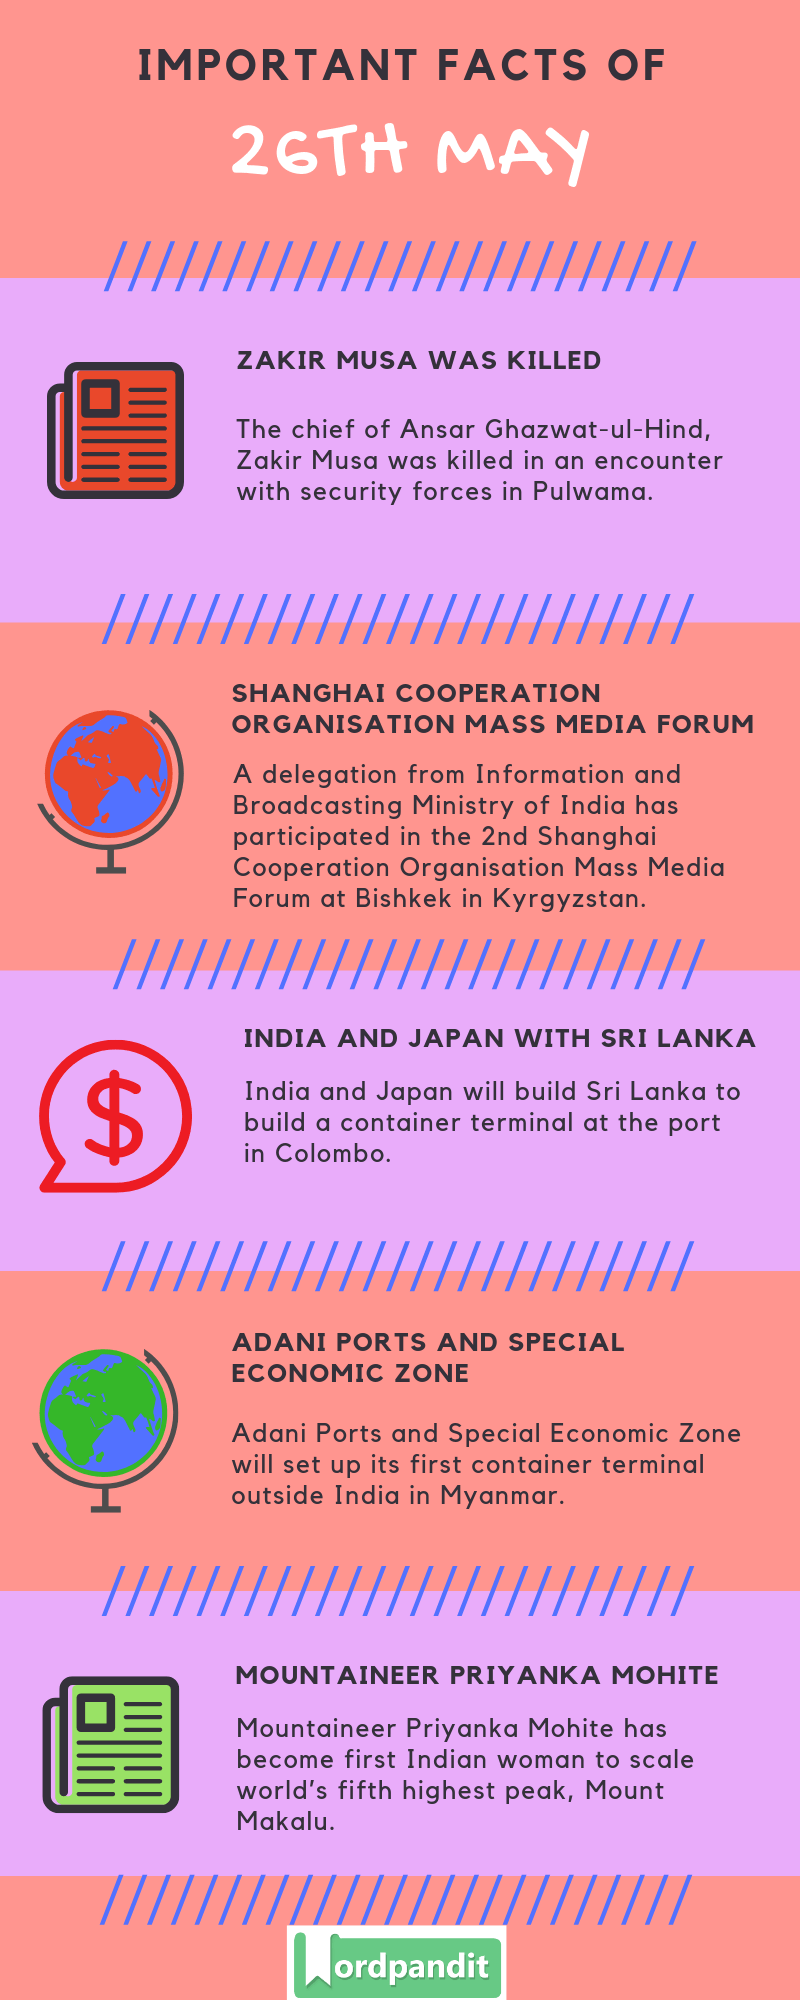 Daily Current Affairs 26 May 2019 Current Affairs Quiz 26 May 2019 Current Affairs Infographic